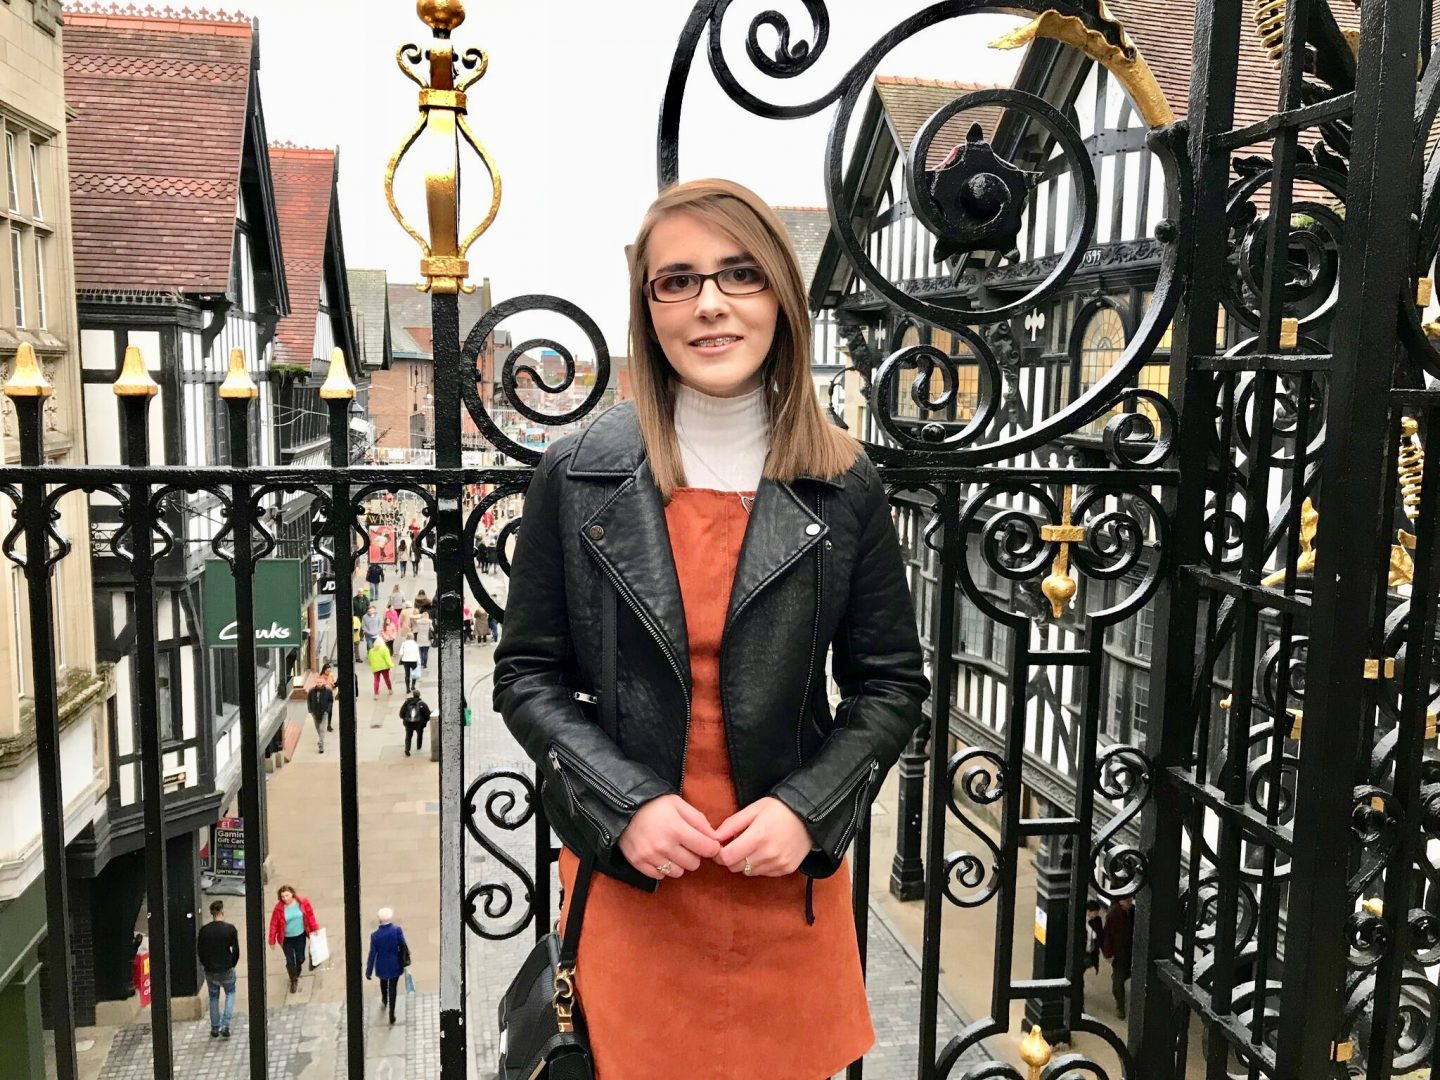 Life as a 20 year old VI girl: A photo of Elin in a burnt orange pinafore and black leather jacket. She is standing in front of pretty black railings with a street in the background